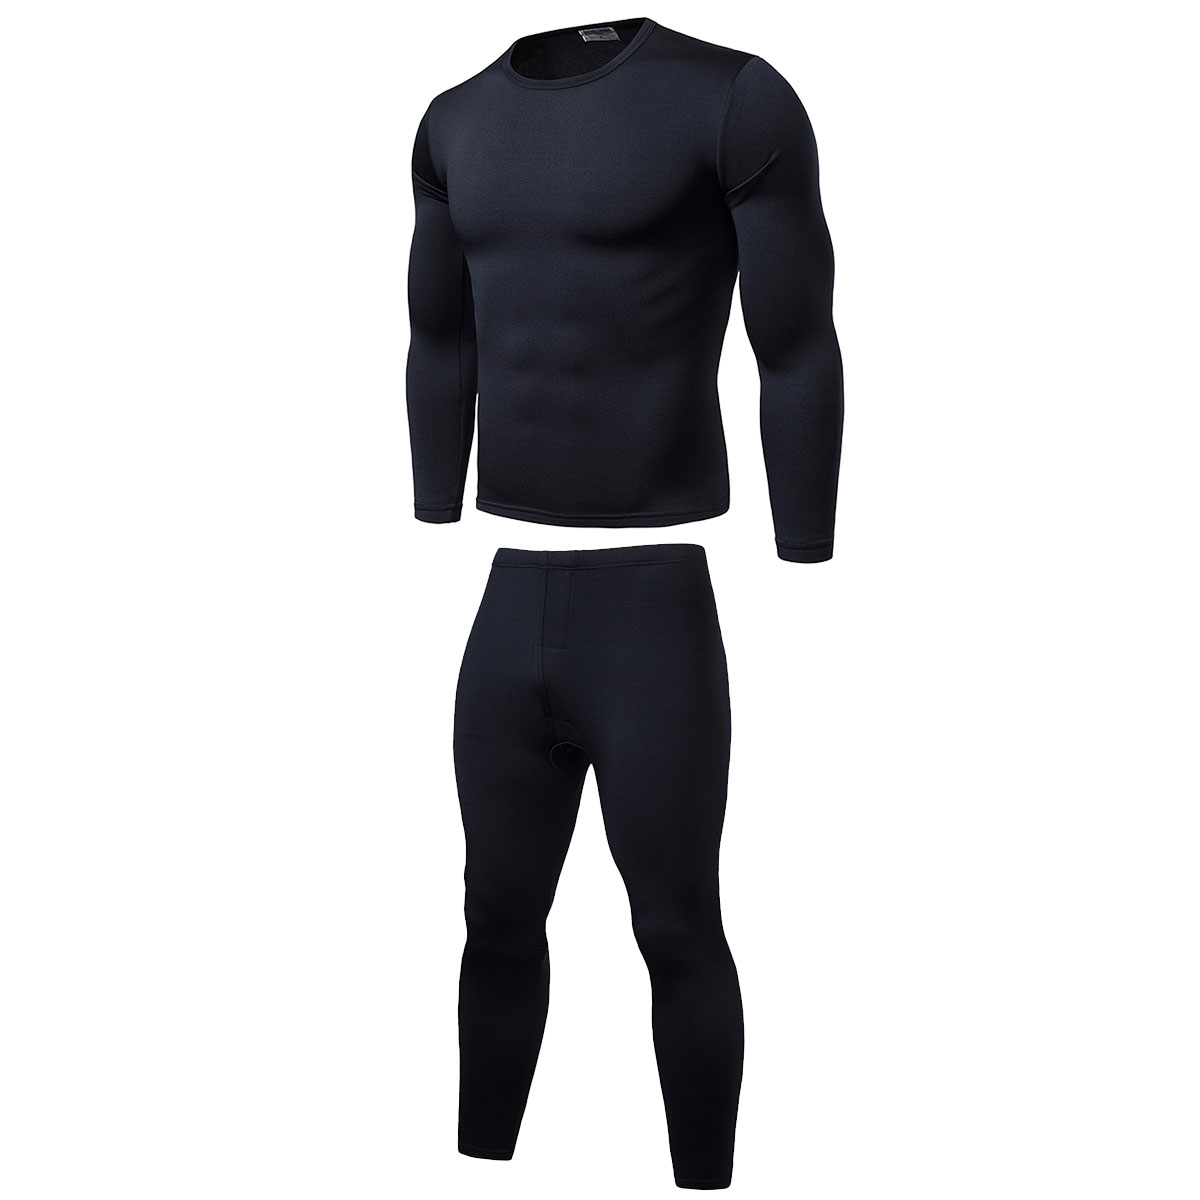 Men's Elastic Underwear Warm Fit Cotton Legging Pants Bottoms Thermal Trousers